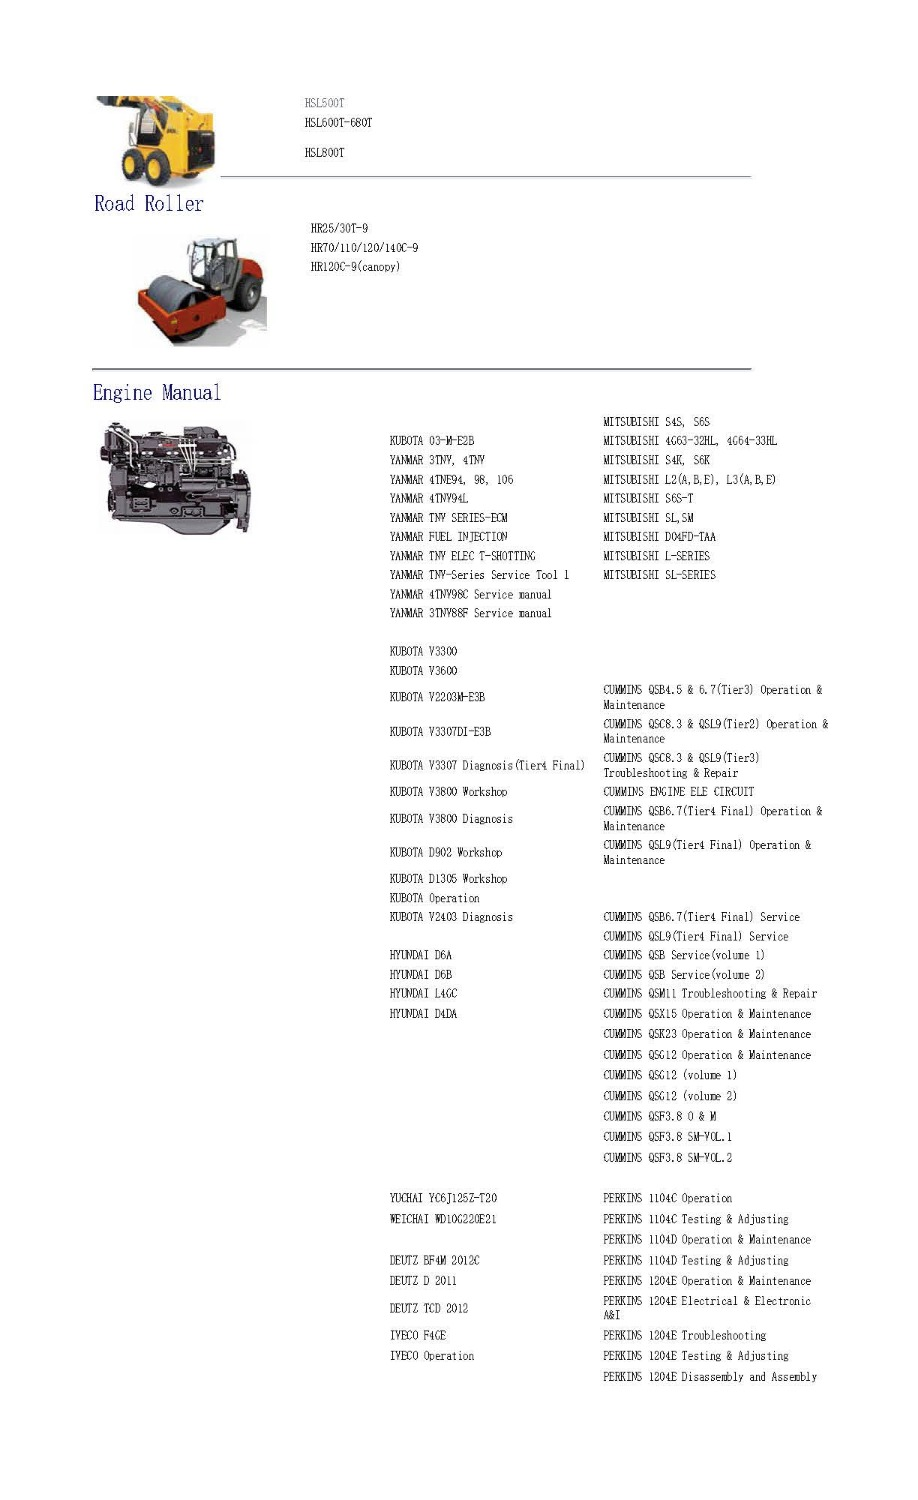 Navistar Dh310 Engine Diagram Just Another Wiring Blog Diagrams Library Rh 31 Budoshop4you De International Parts